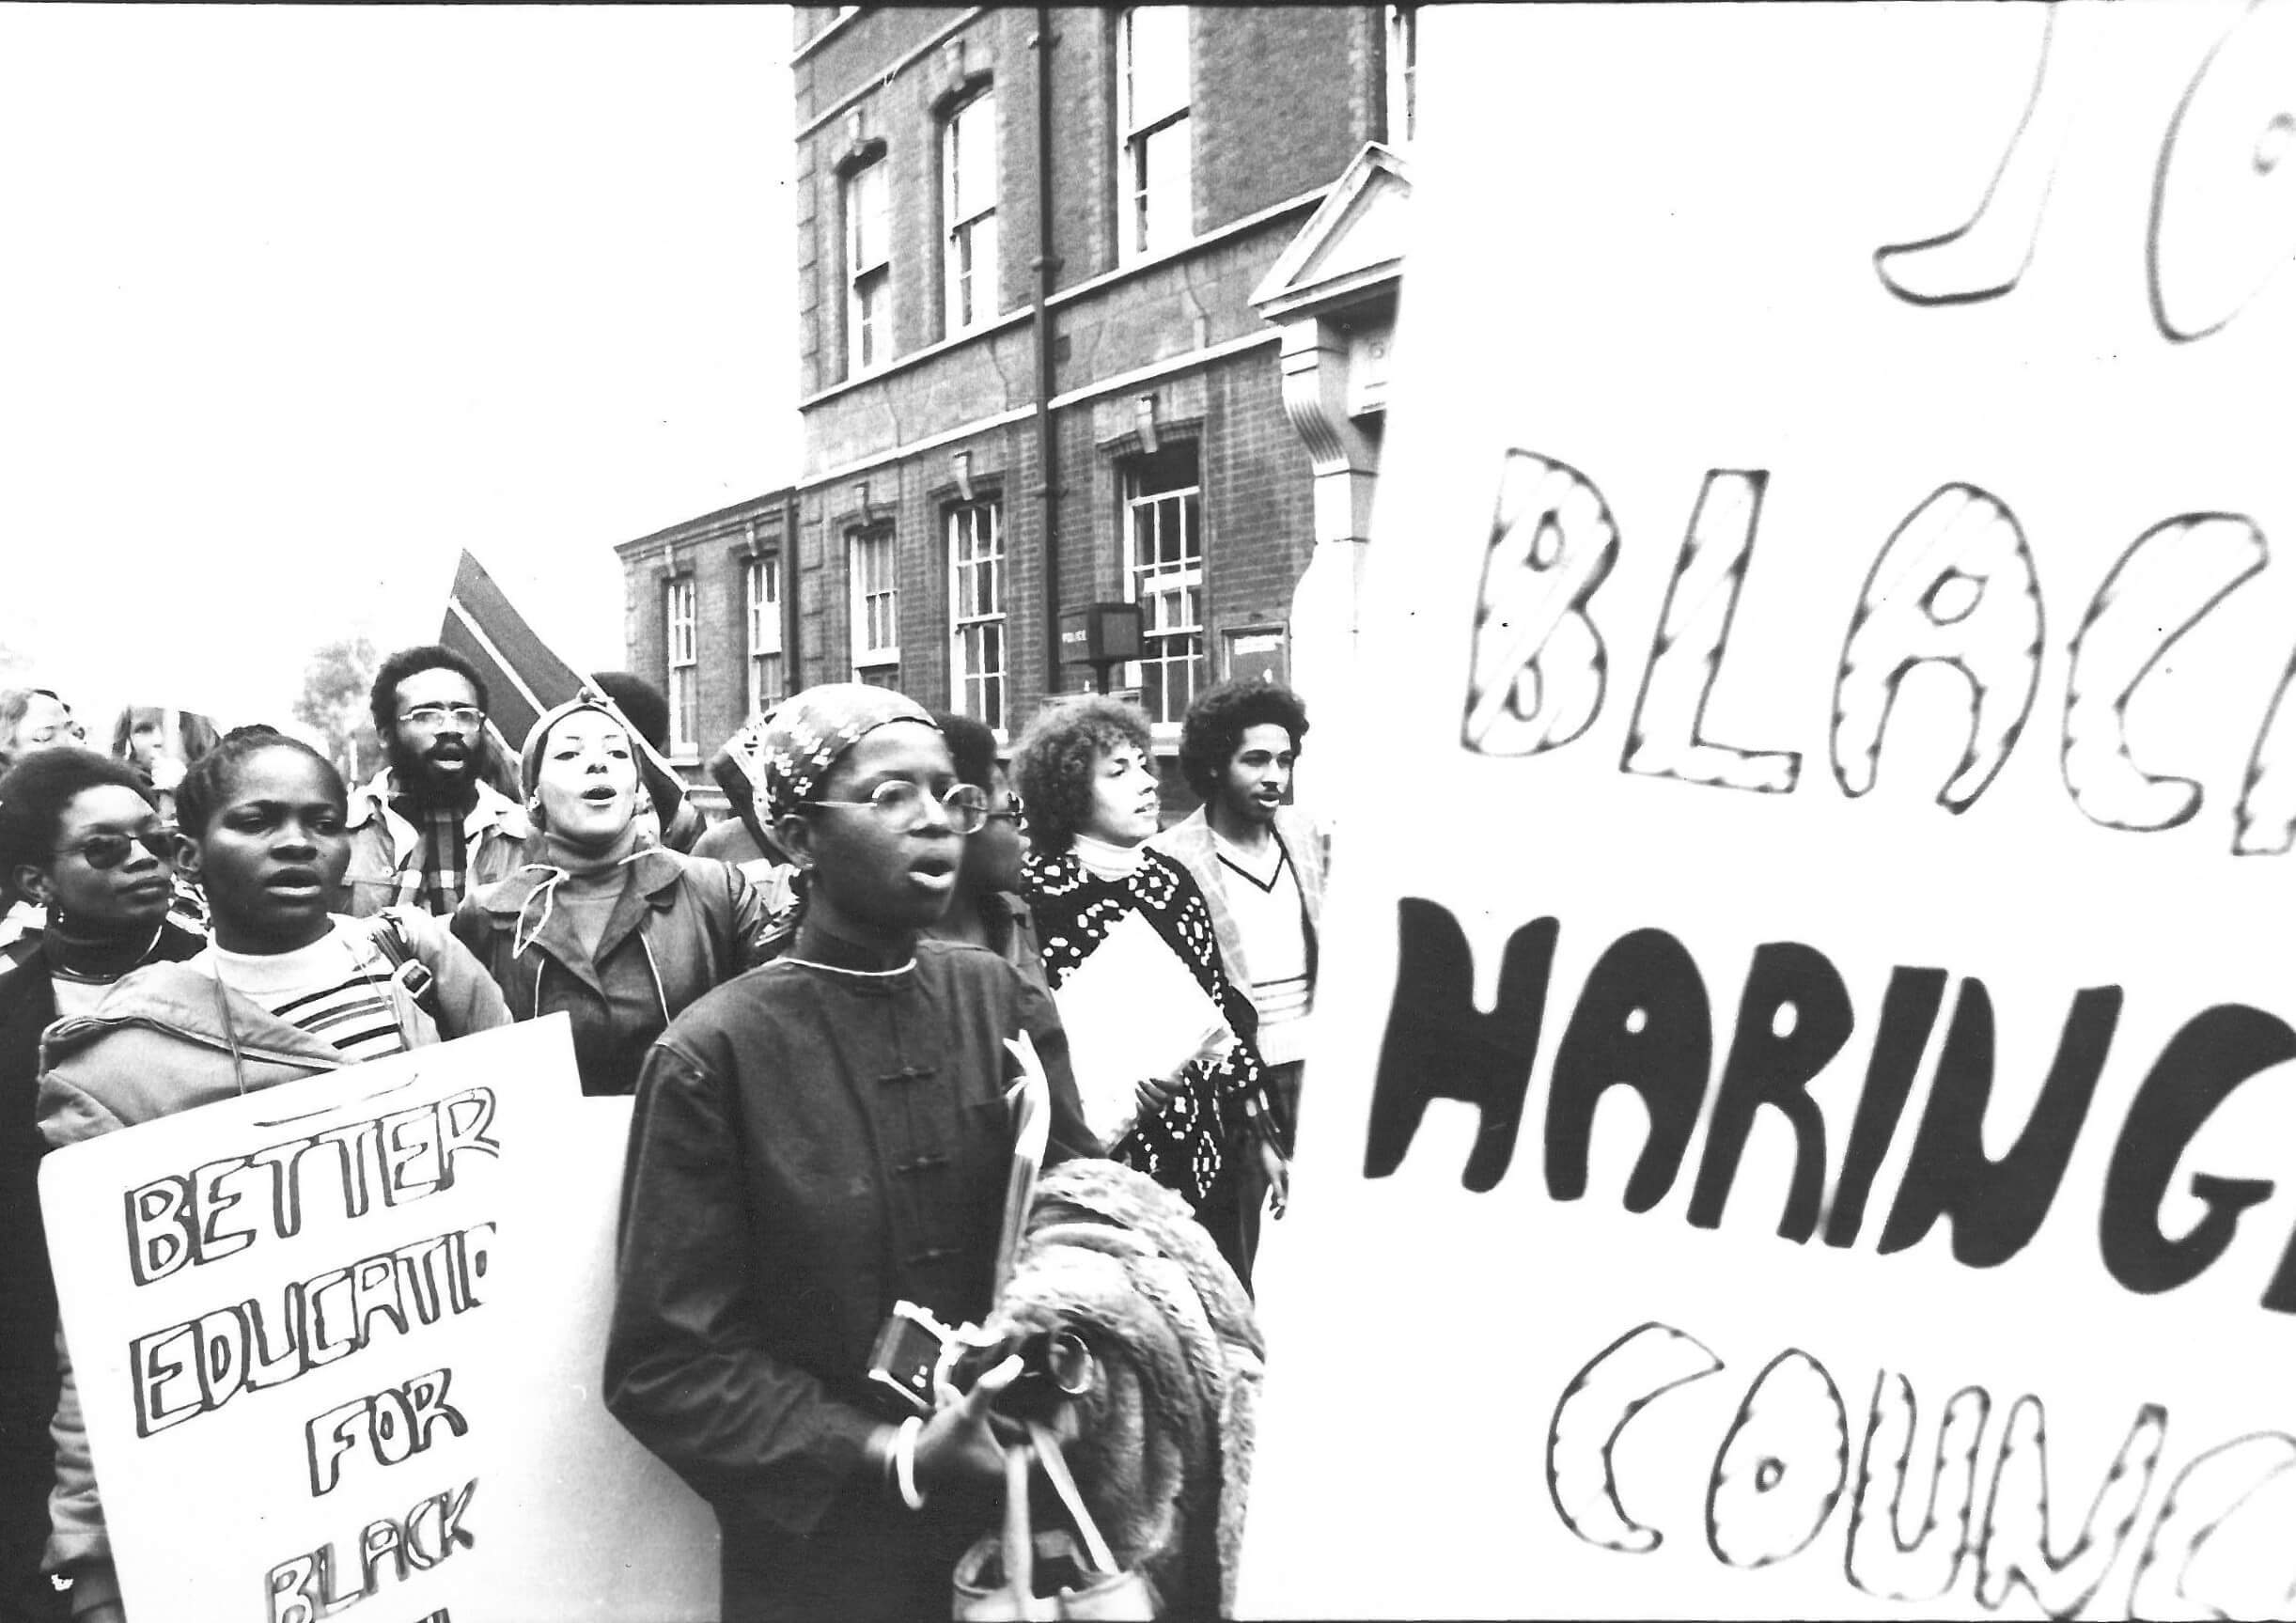 Black and white photo showing protestors with neck boards and placards calling for a better education for black children. The placard nearest the camera cannot be seen in full, but the slogan is protesting against Haringey Council.